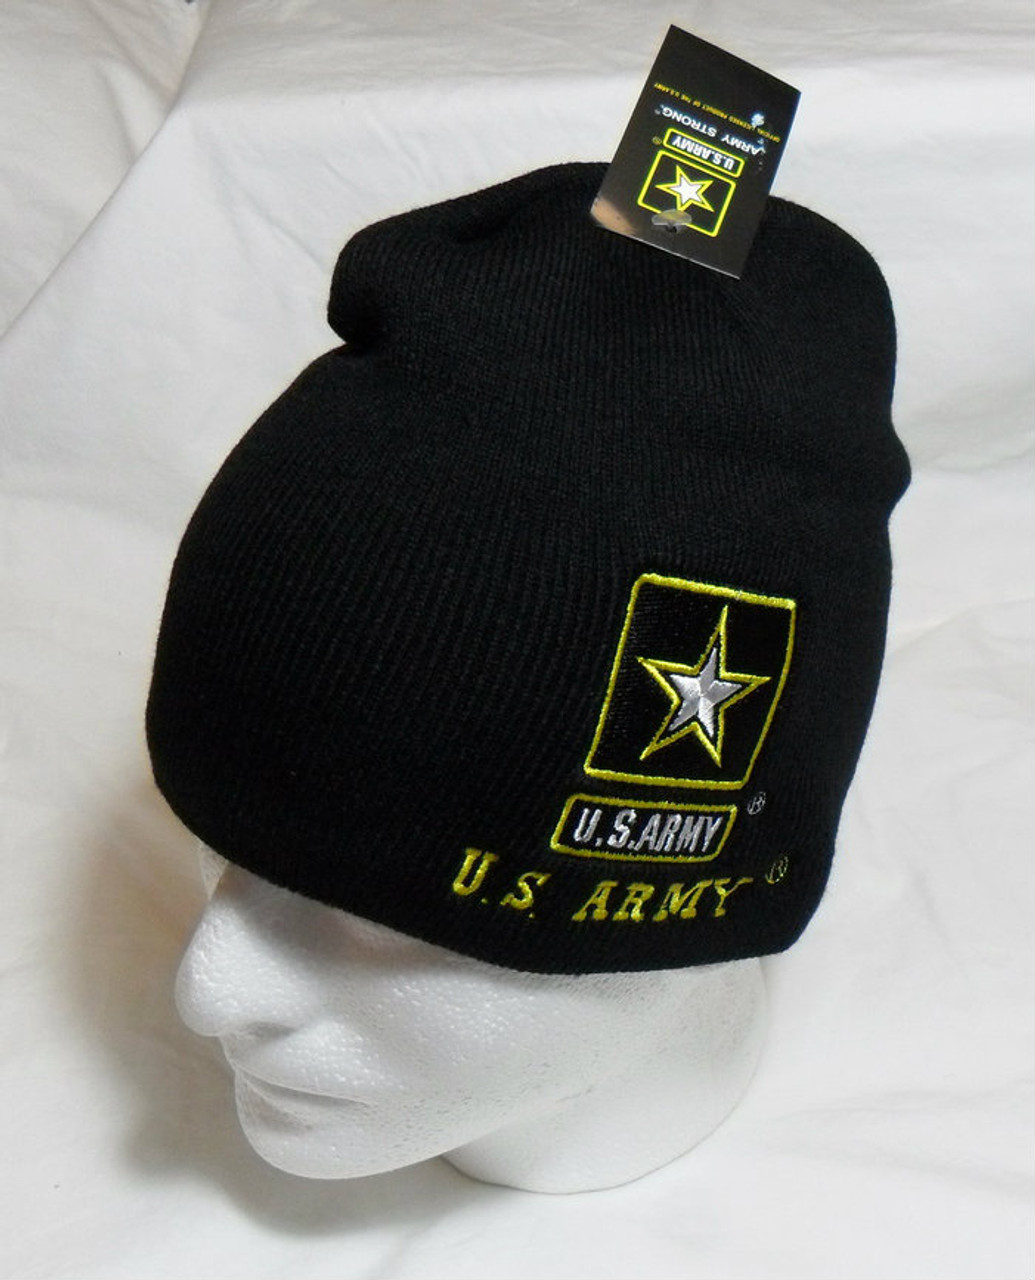 78c02fa30b0093 US ARMY with Star Watch Cap Beanie Winter Ski Hat Toboggan Officially  Licensed